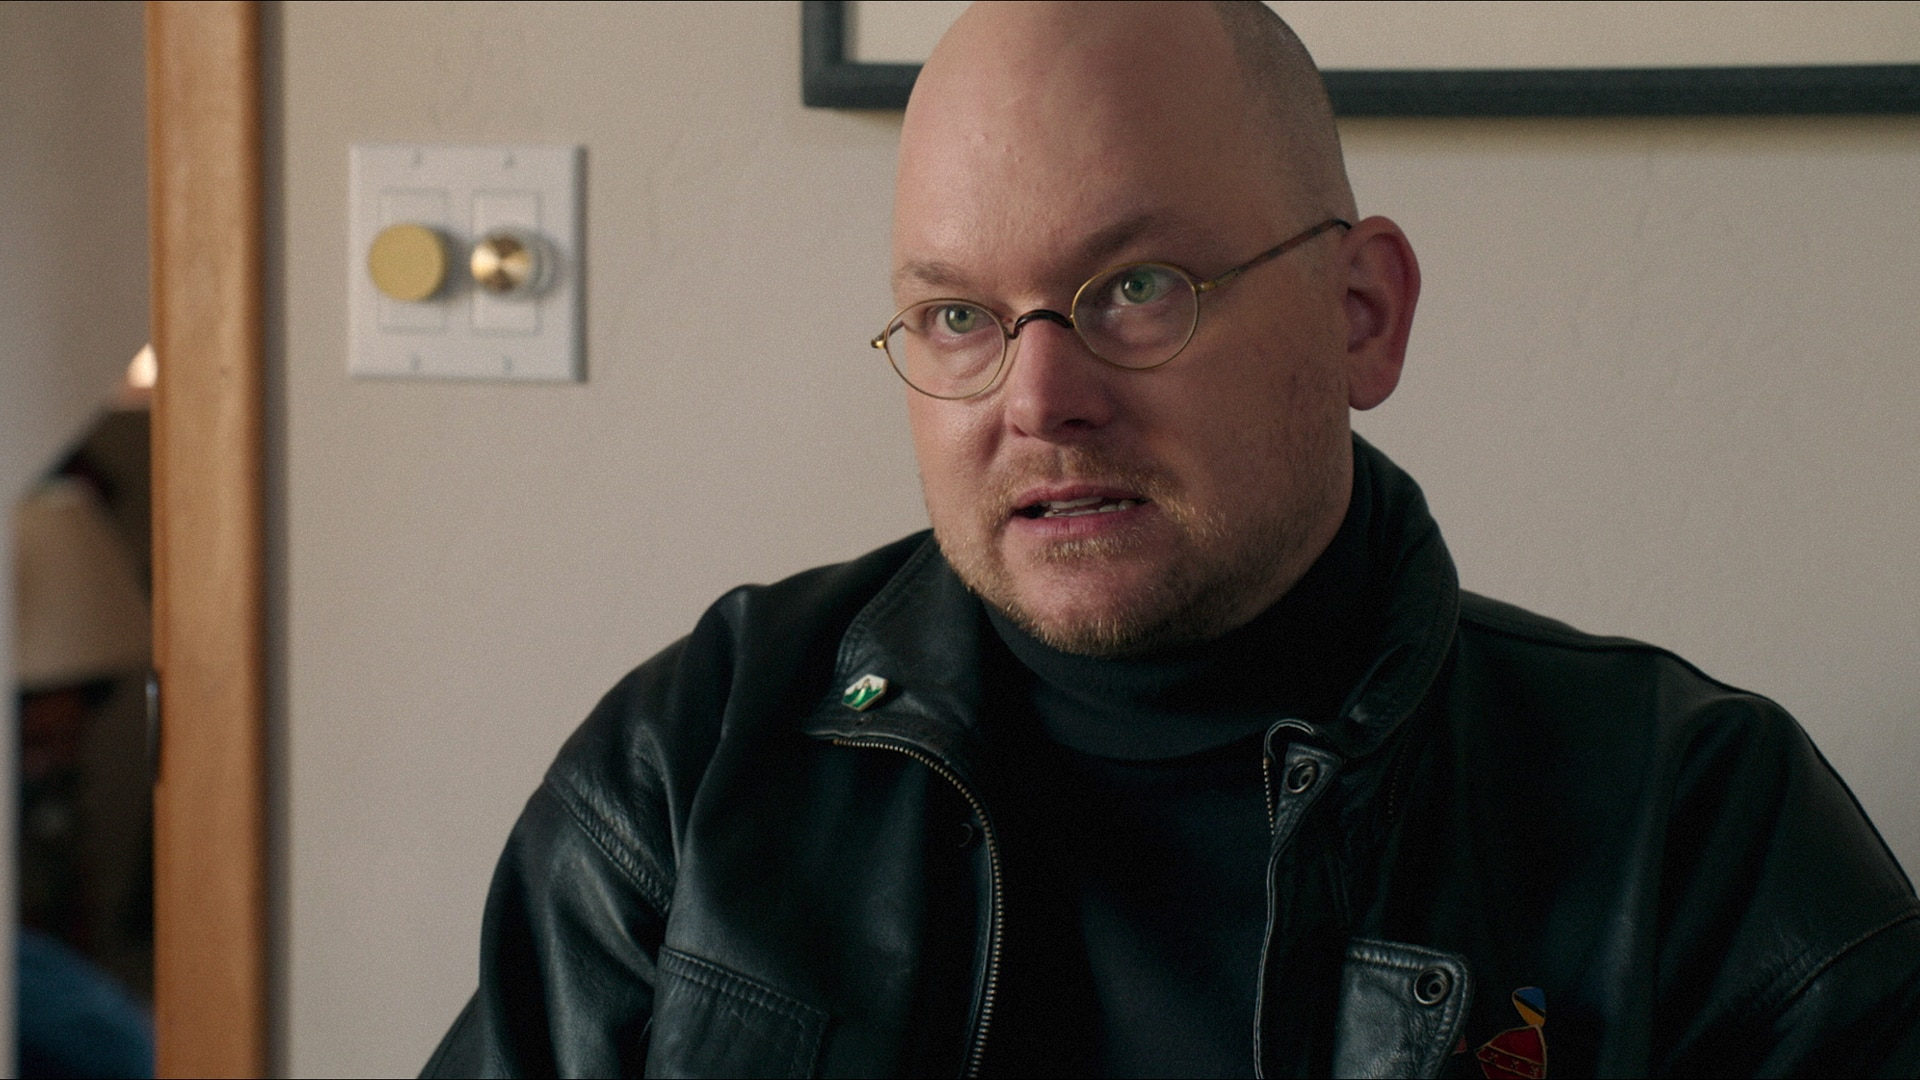 Mark Proksch as ghost assassin Os in Another Evil (2016)